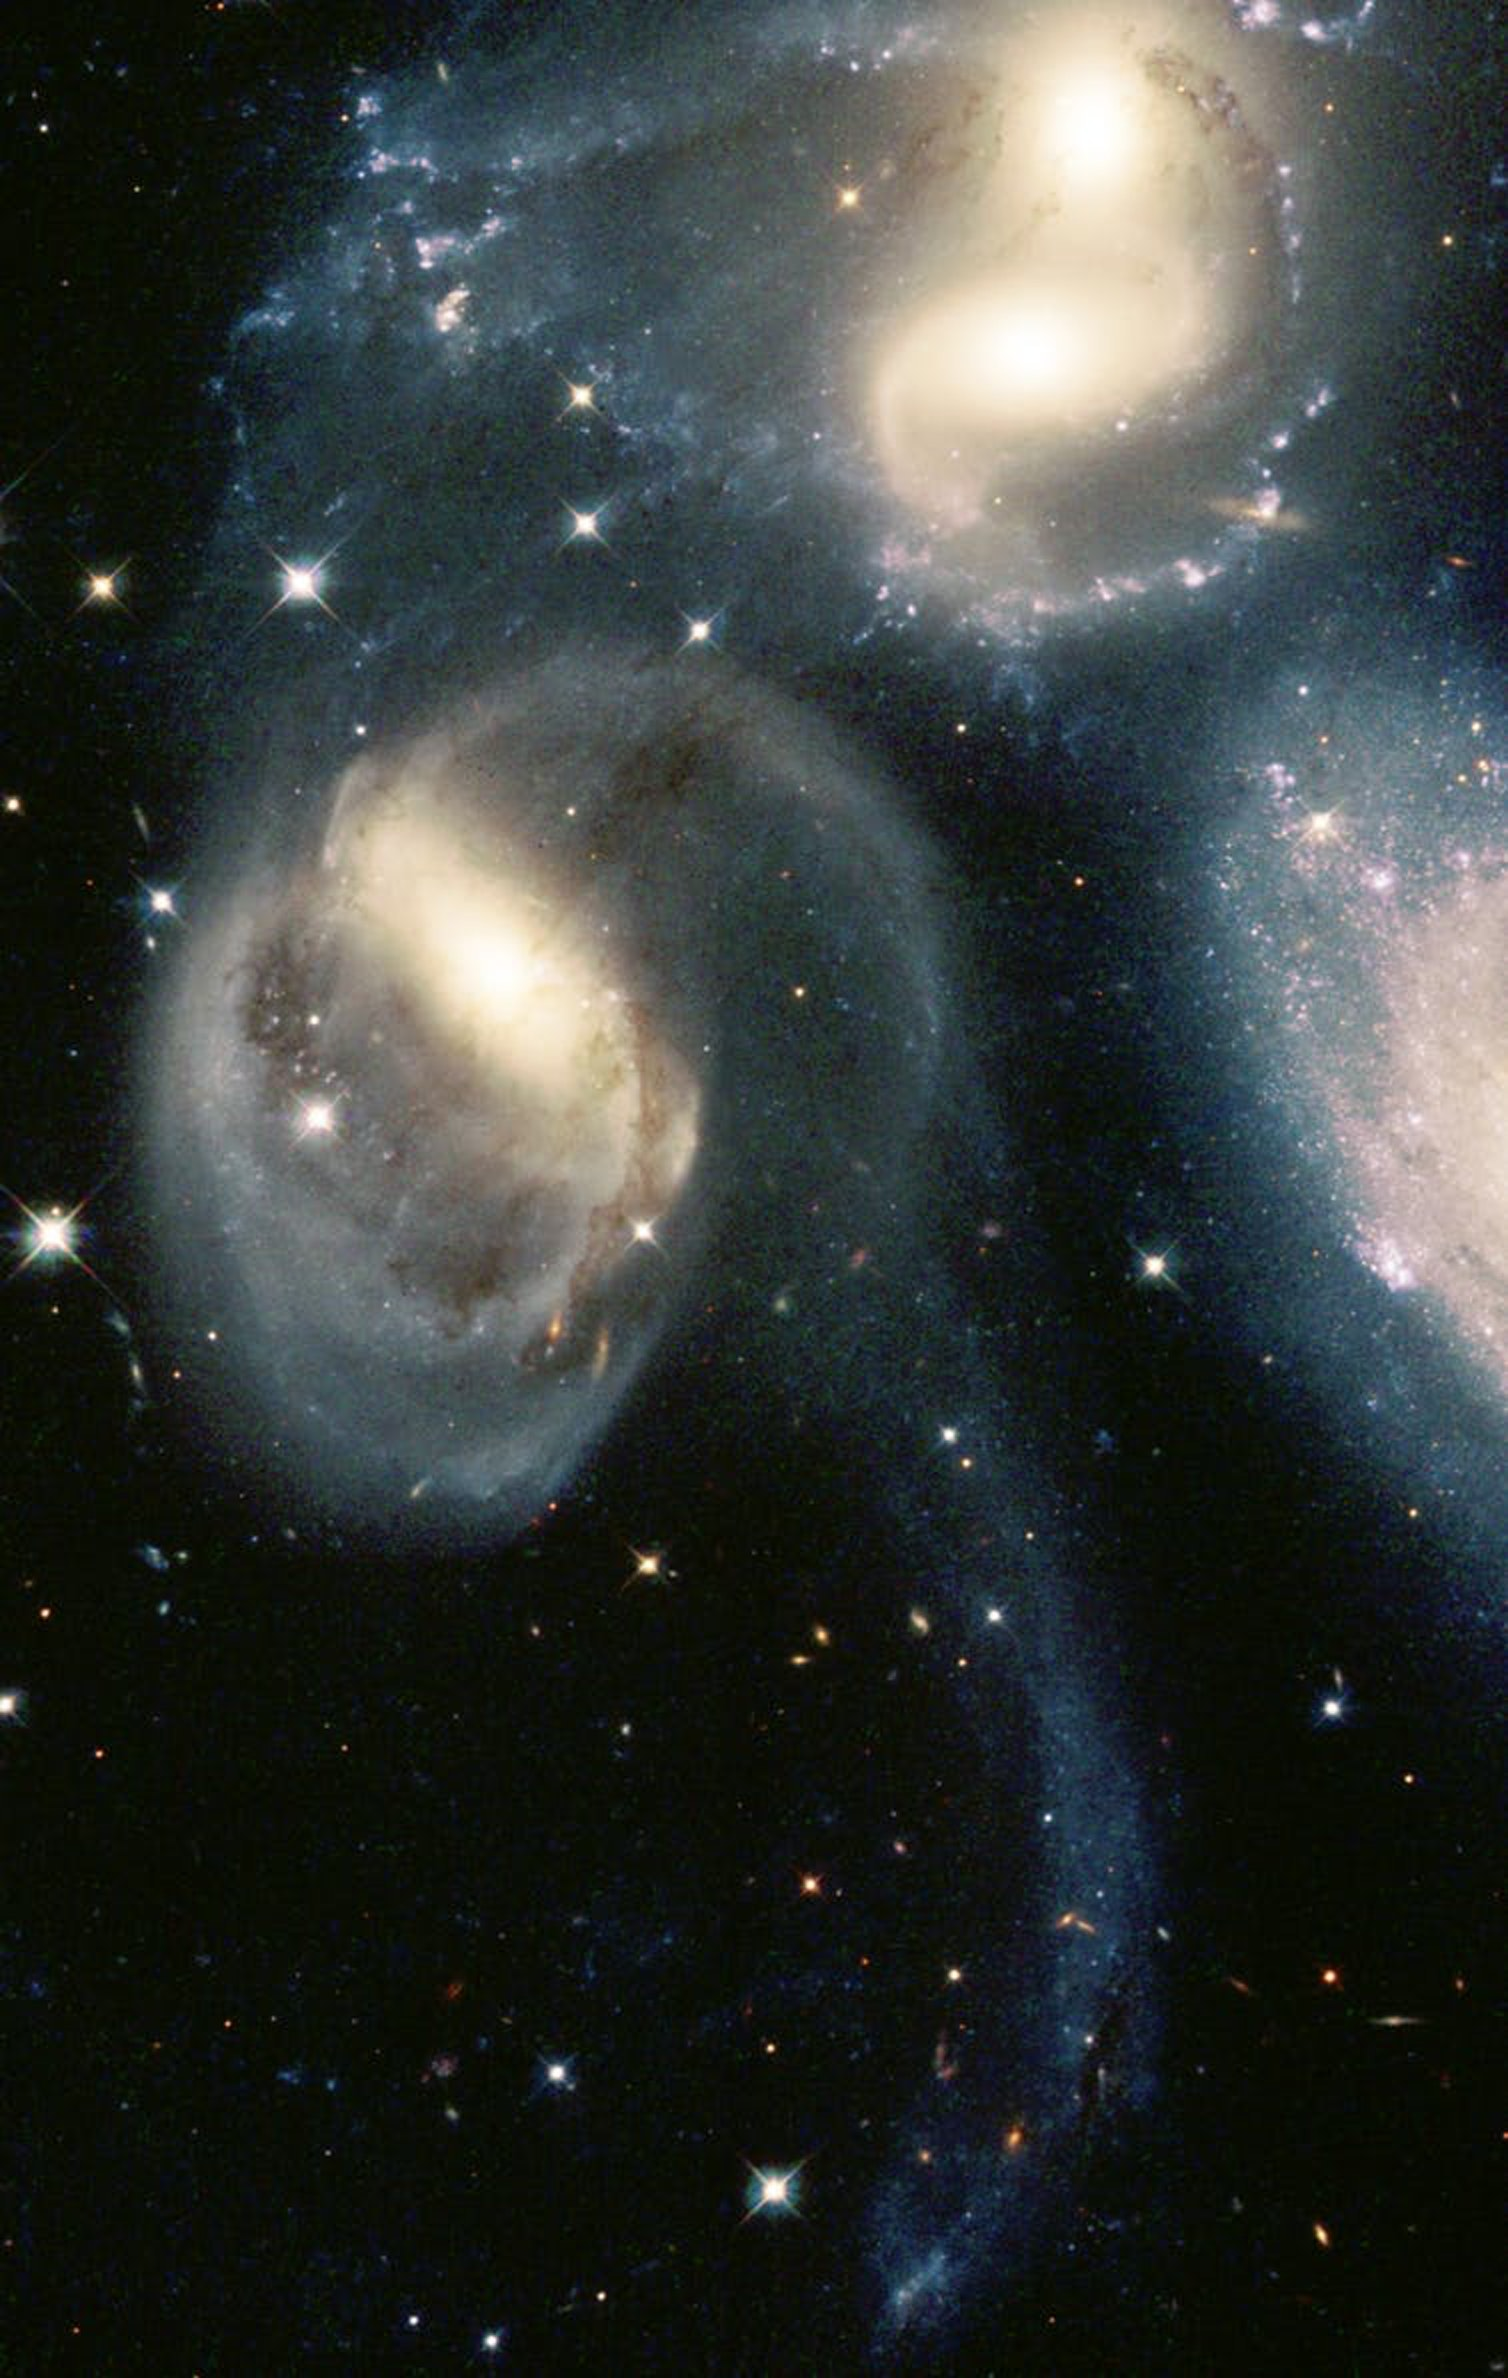 Hubble Space Telescope: Astronomers Share 17 of the Best Space Photos